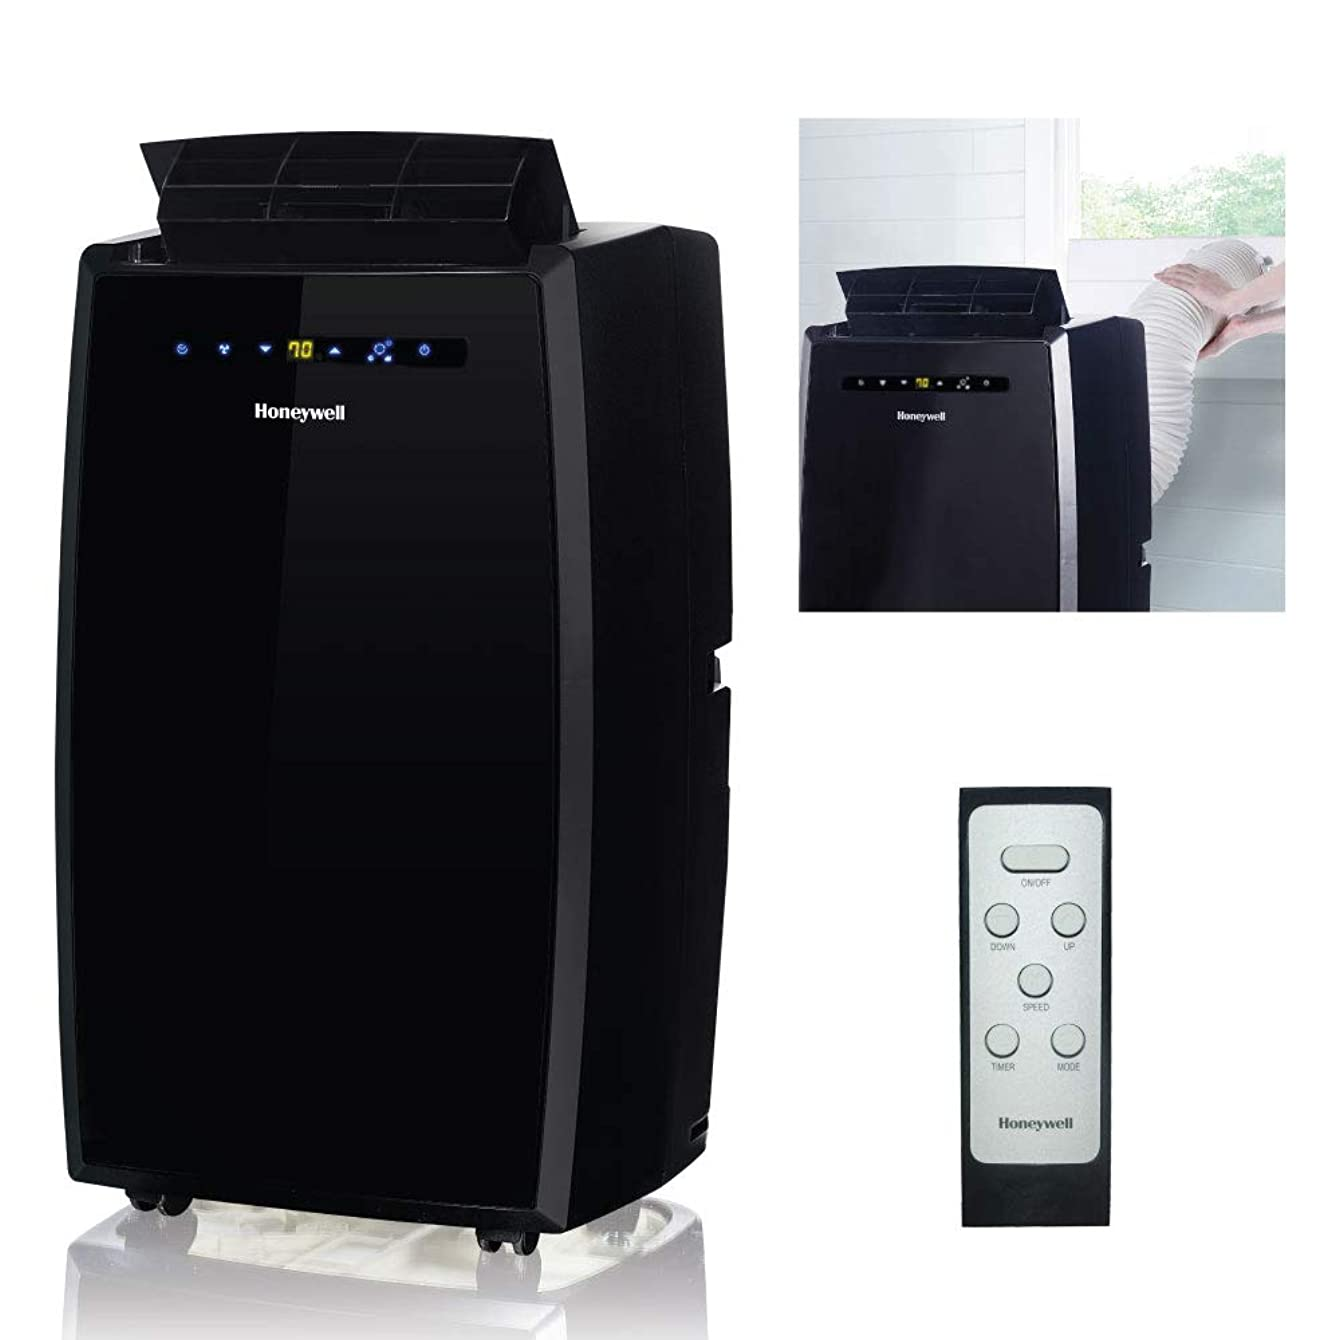 Honeywell MN12CESBB 12000 BTU Portable AC, Dehumidifier, Fan for Rooms Up To 400-550 Sq. Ft. with Thermal Overload Protection, Washable Air Filter & Remote Control